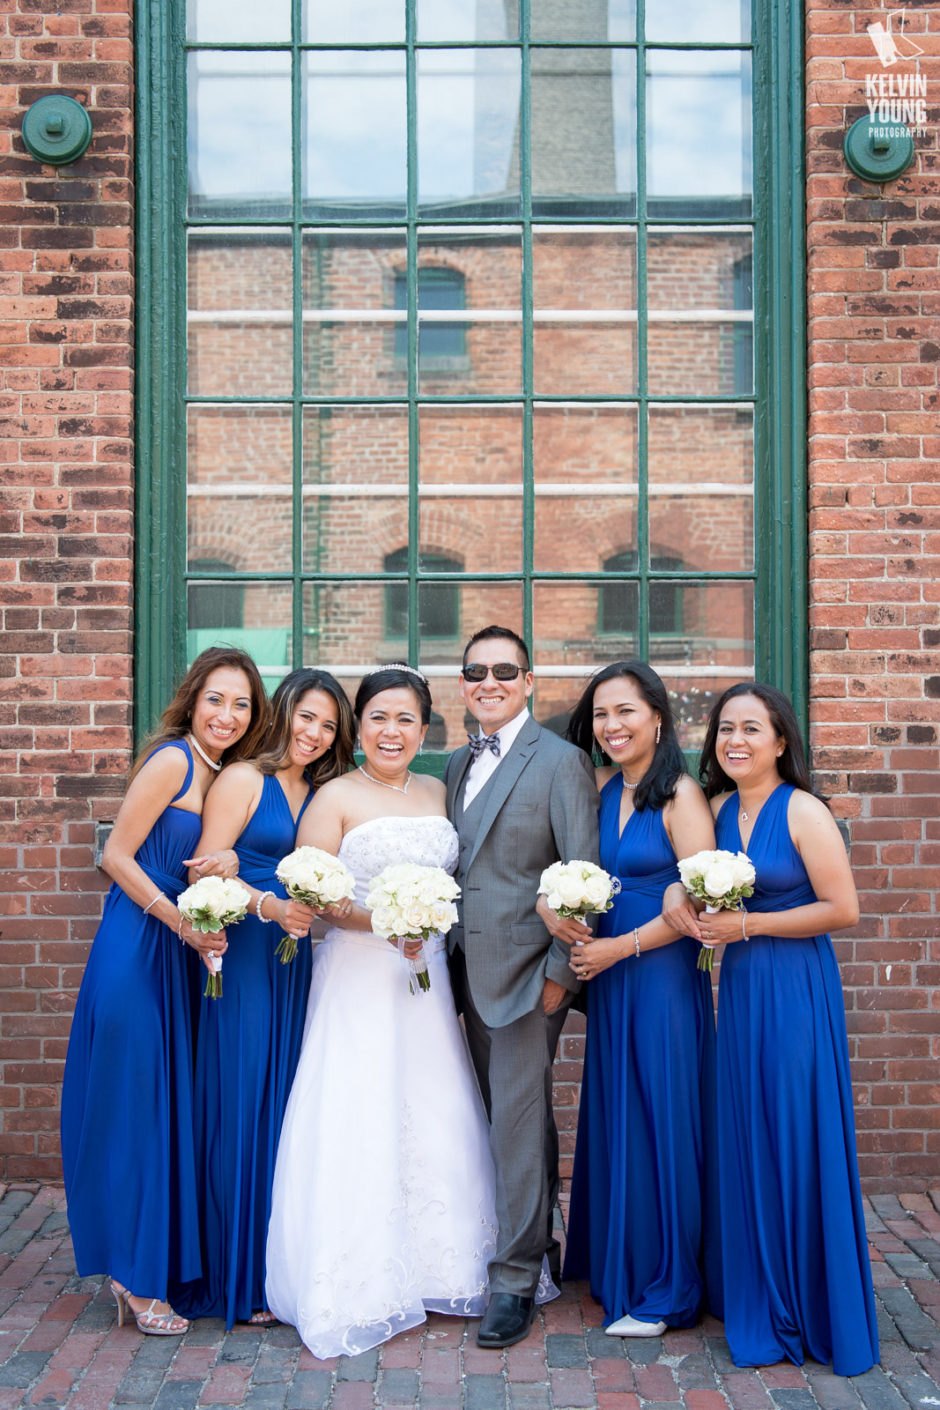 kyp16-rodalyn_yovari_toronto_wedding-023